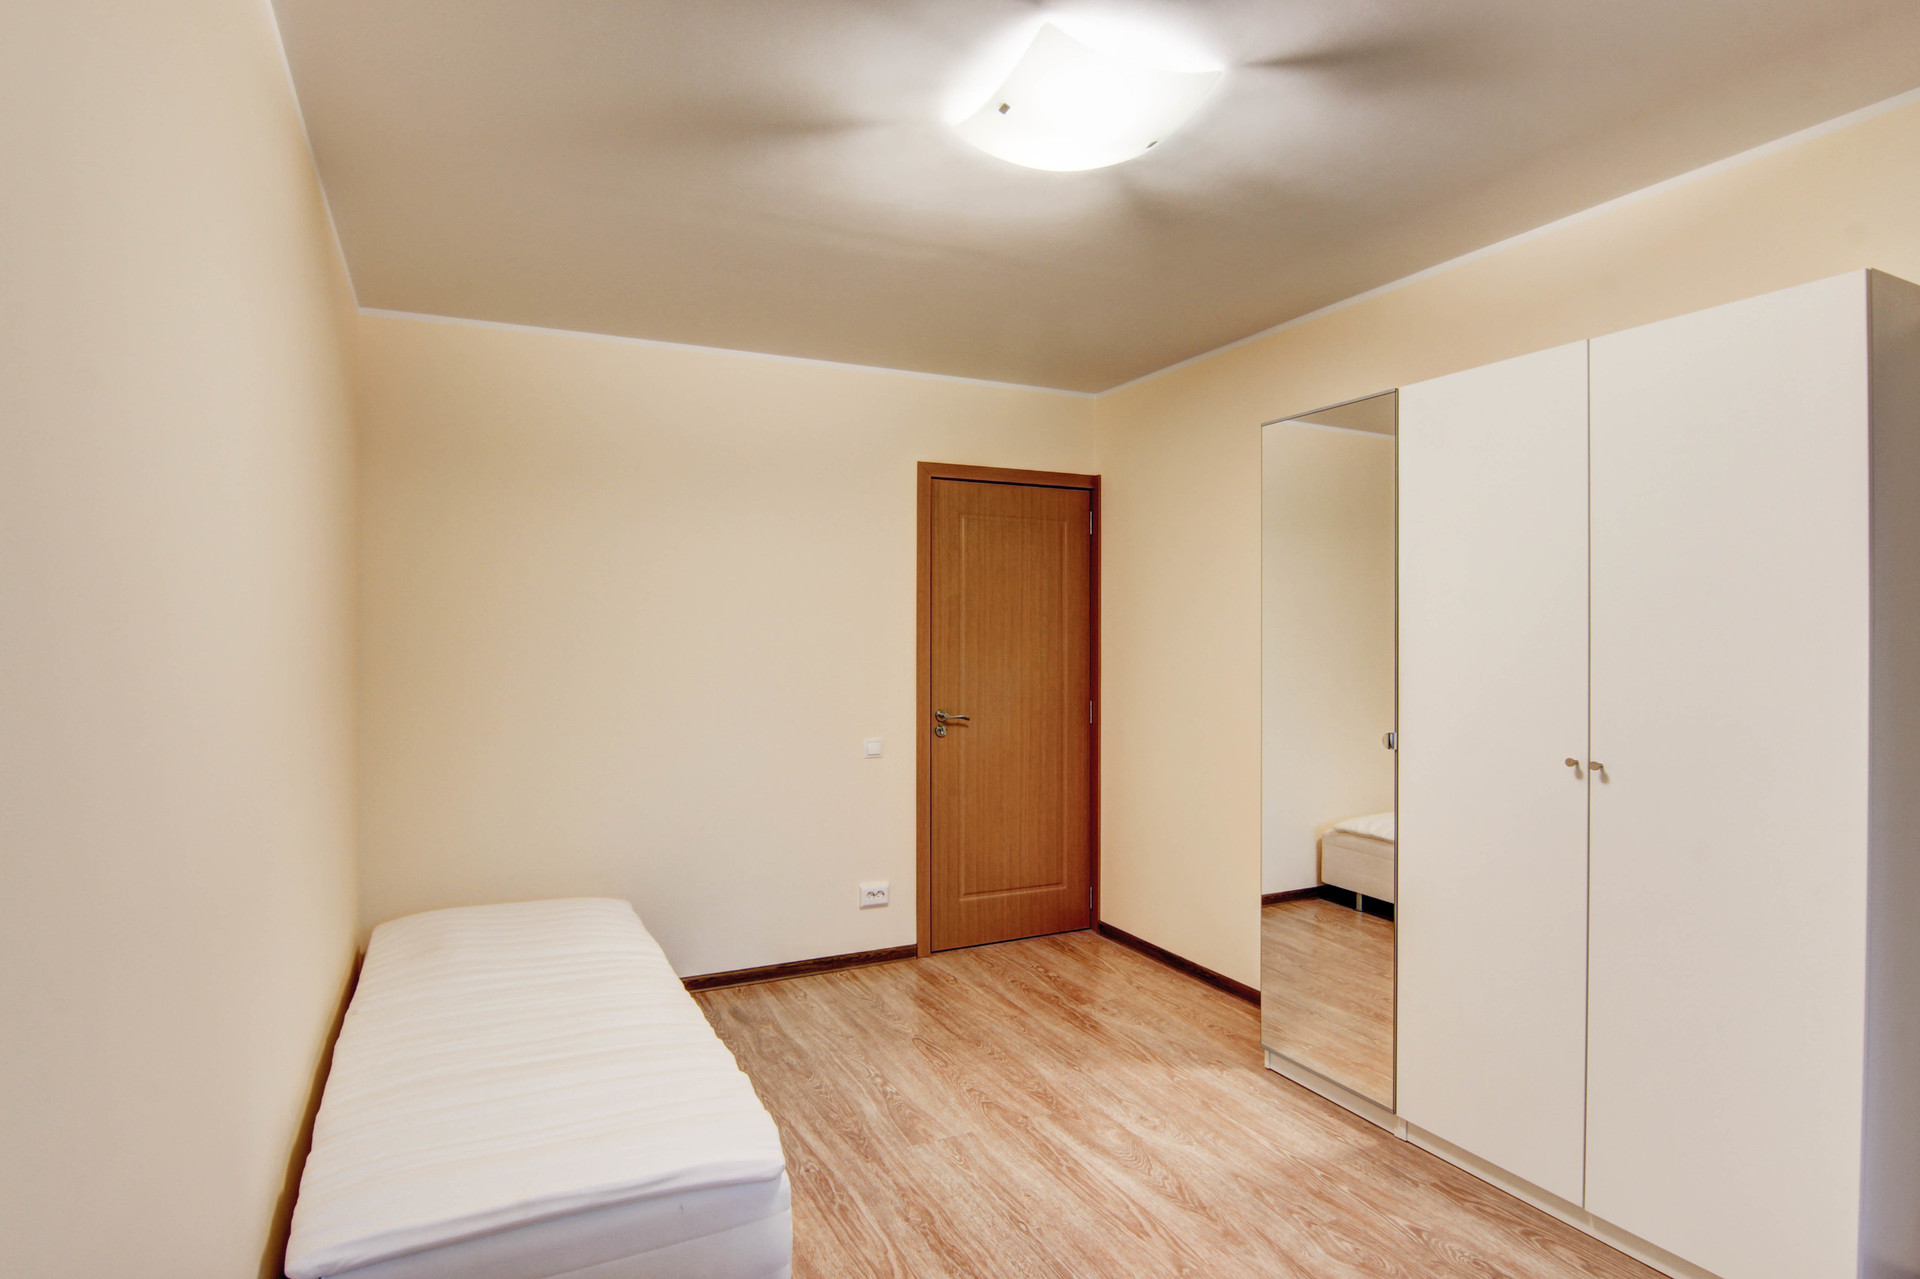 Cozy room in 5-room apartment near the universities